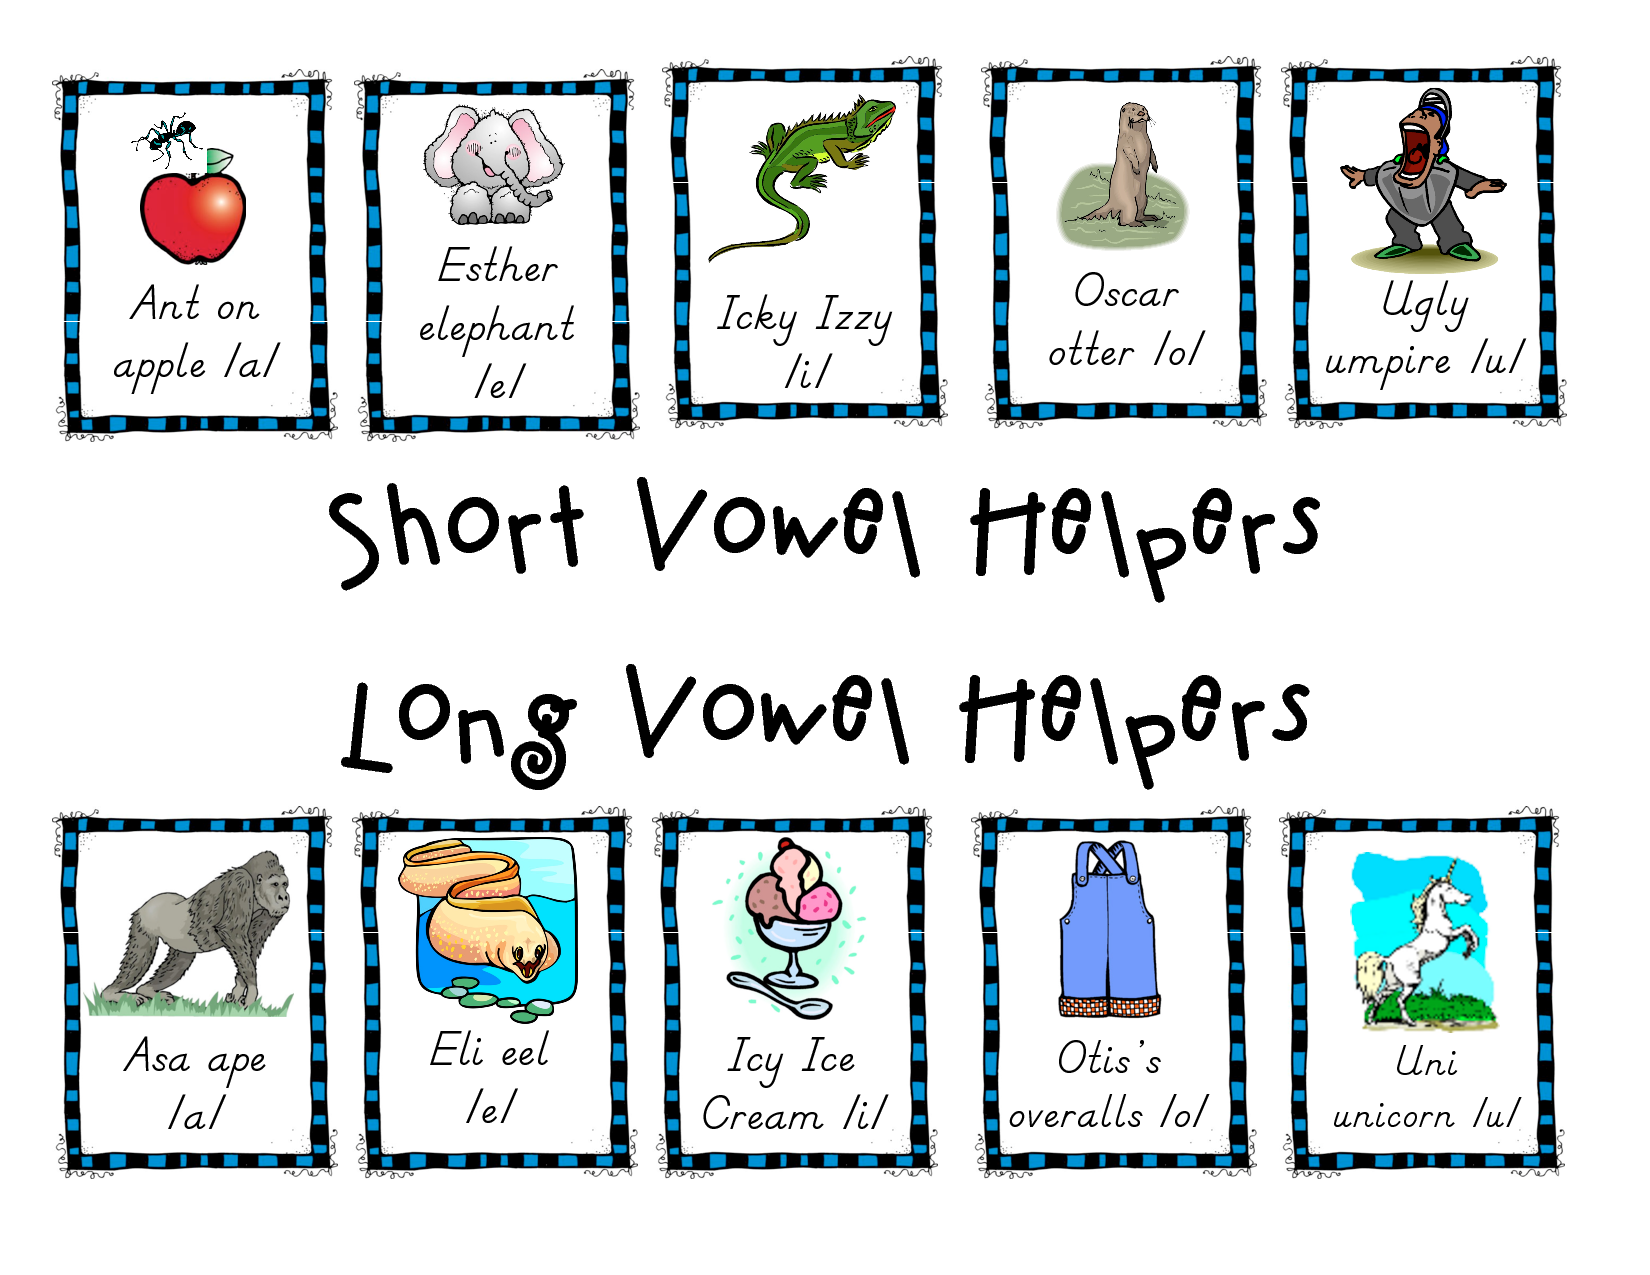 worksheet Short And Long Vowels Worksheets 10 images about short and long vowels in songs books on pinterest children book reports graphic organizers